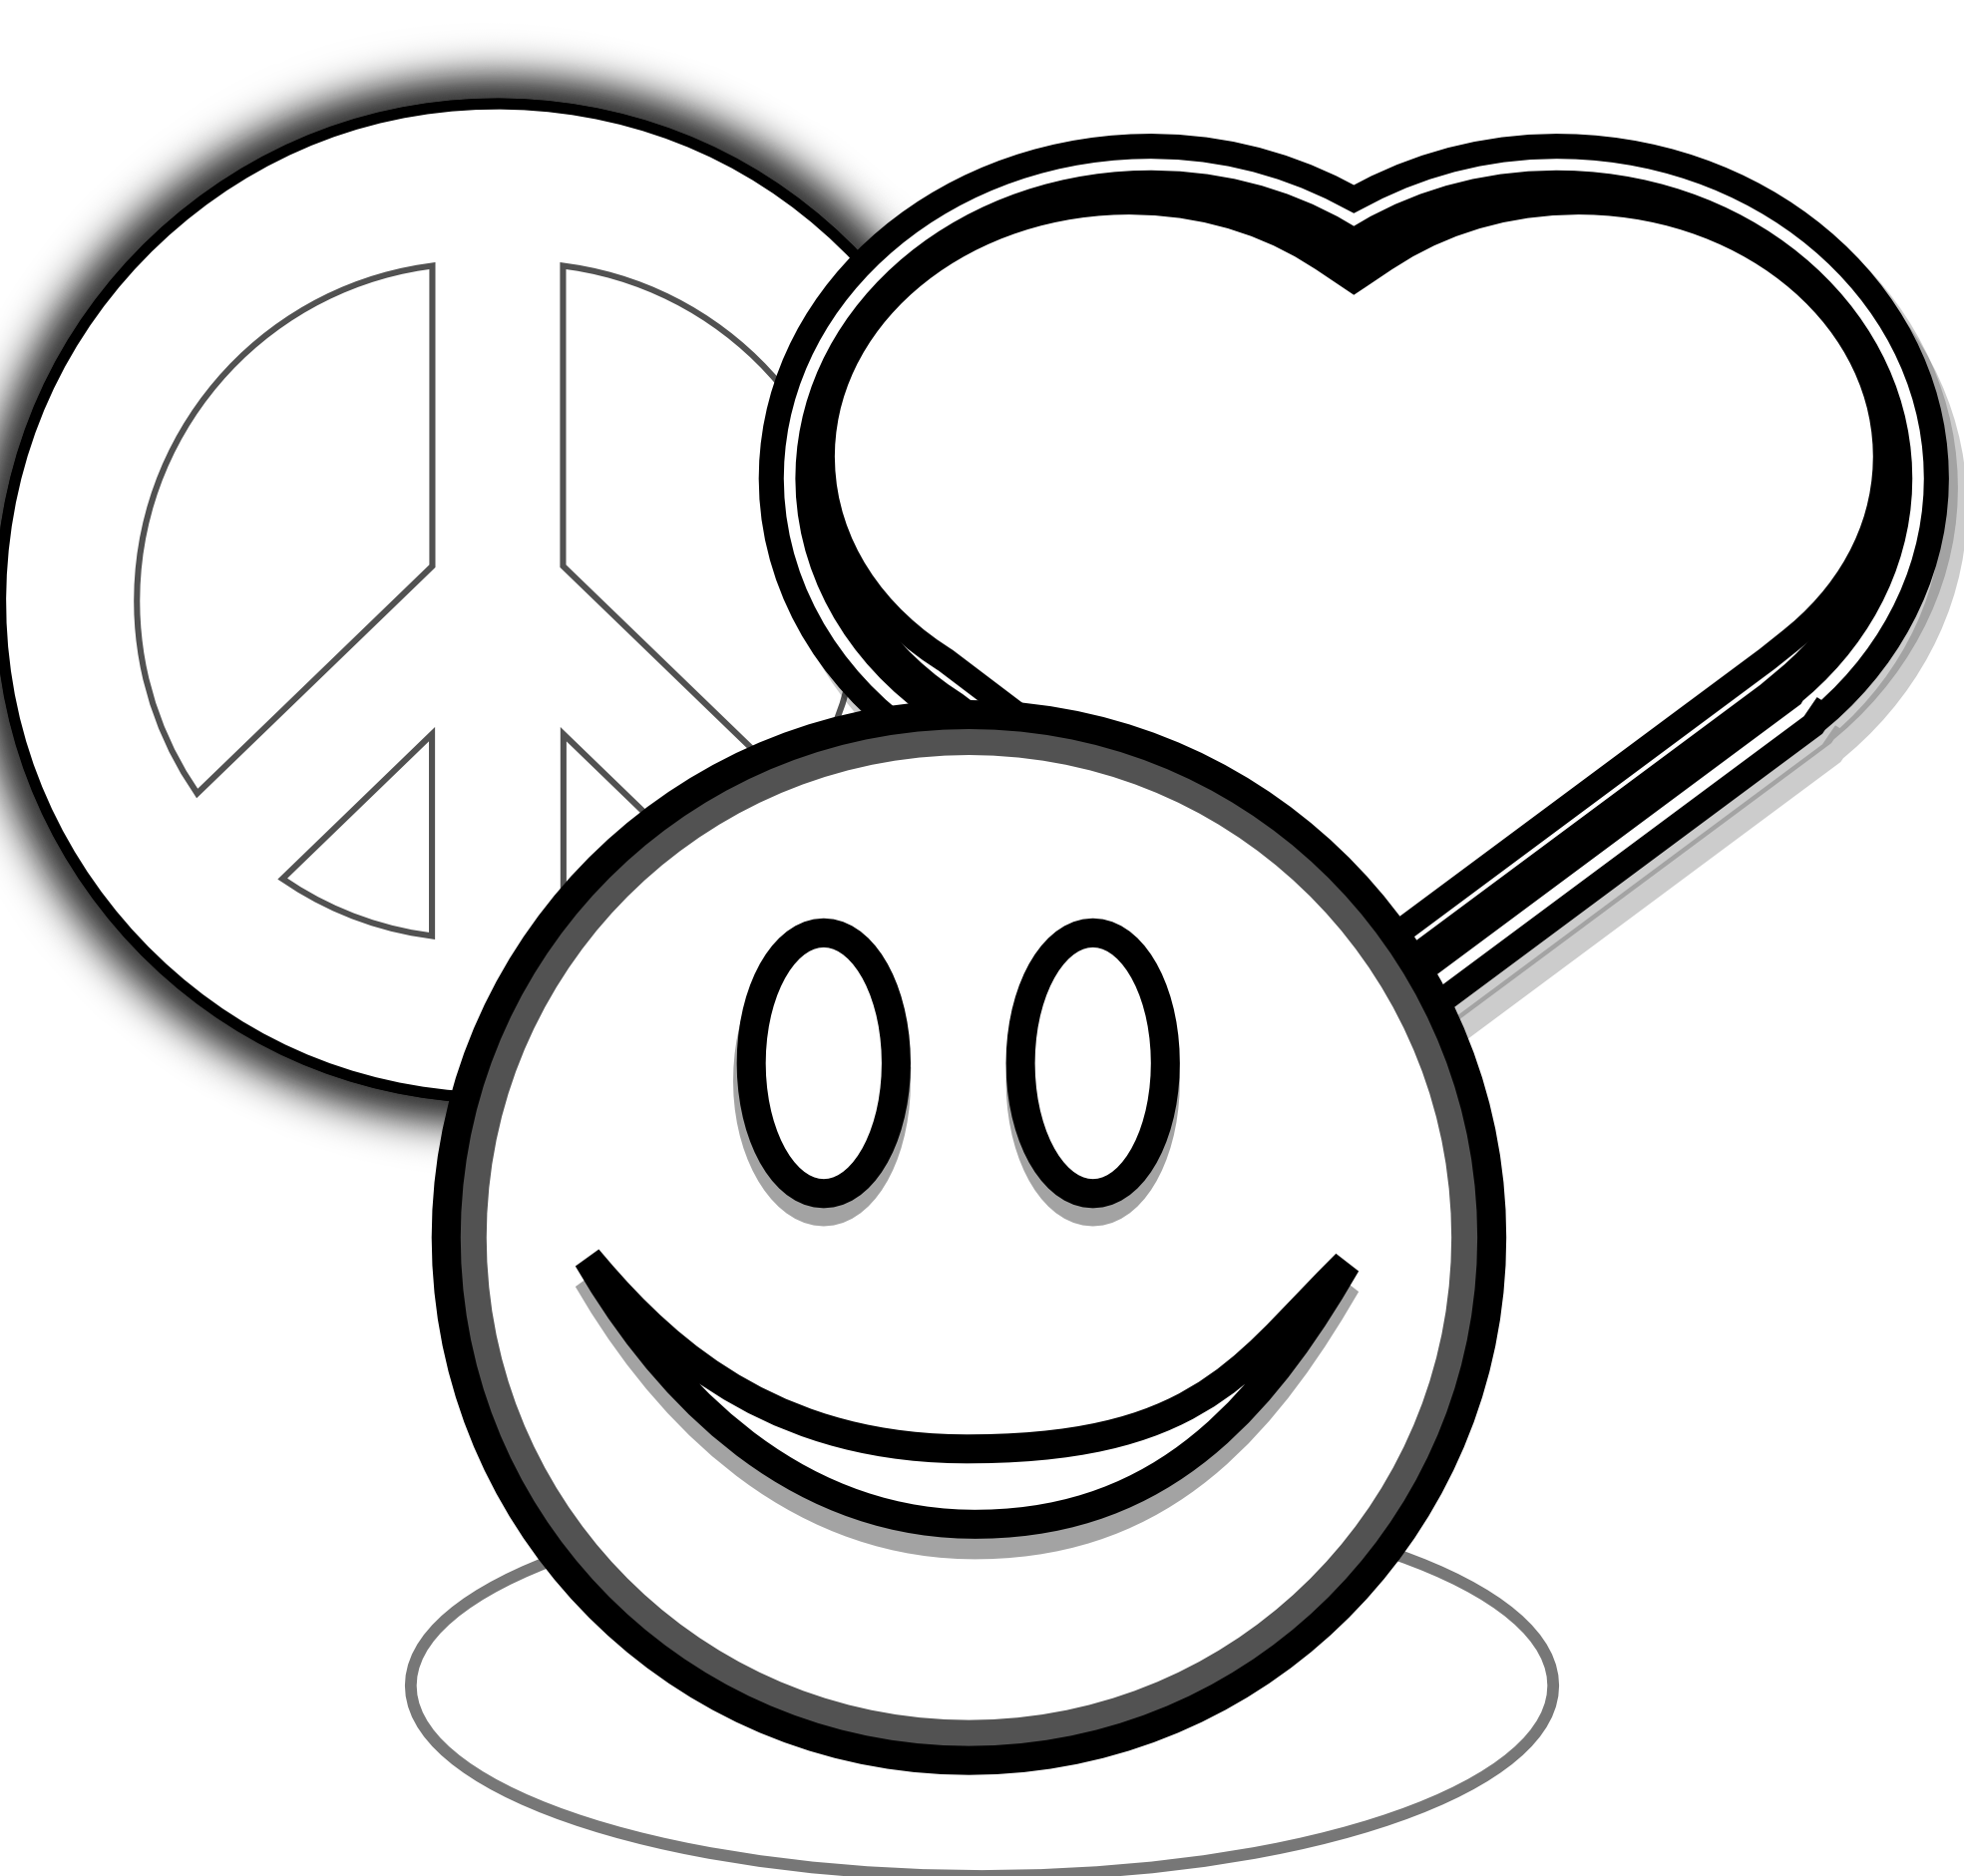 World Peace Coloring Pages - Coloring Home